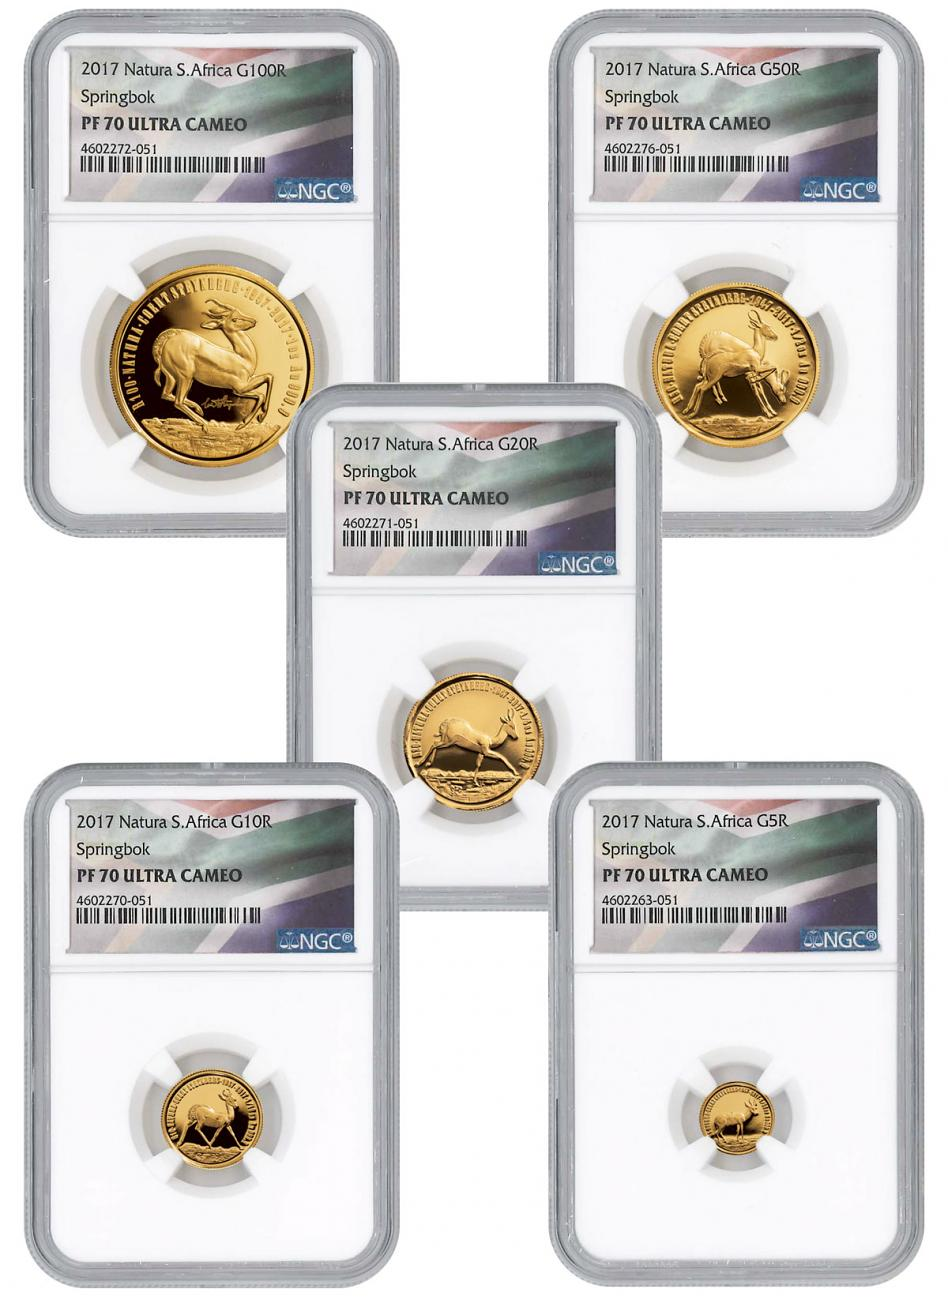 2017 South Africa Natura - Springbok Antelope 5-Coin Set Gold Proof Coin Scarce and Unique Coin Division NGC PF70 UC